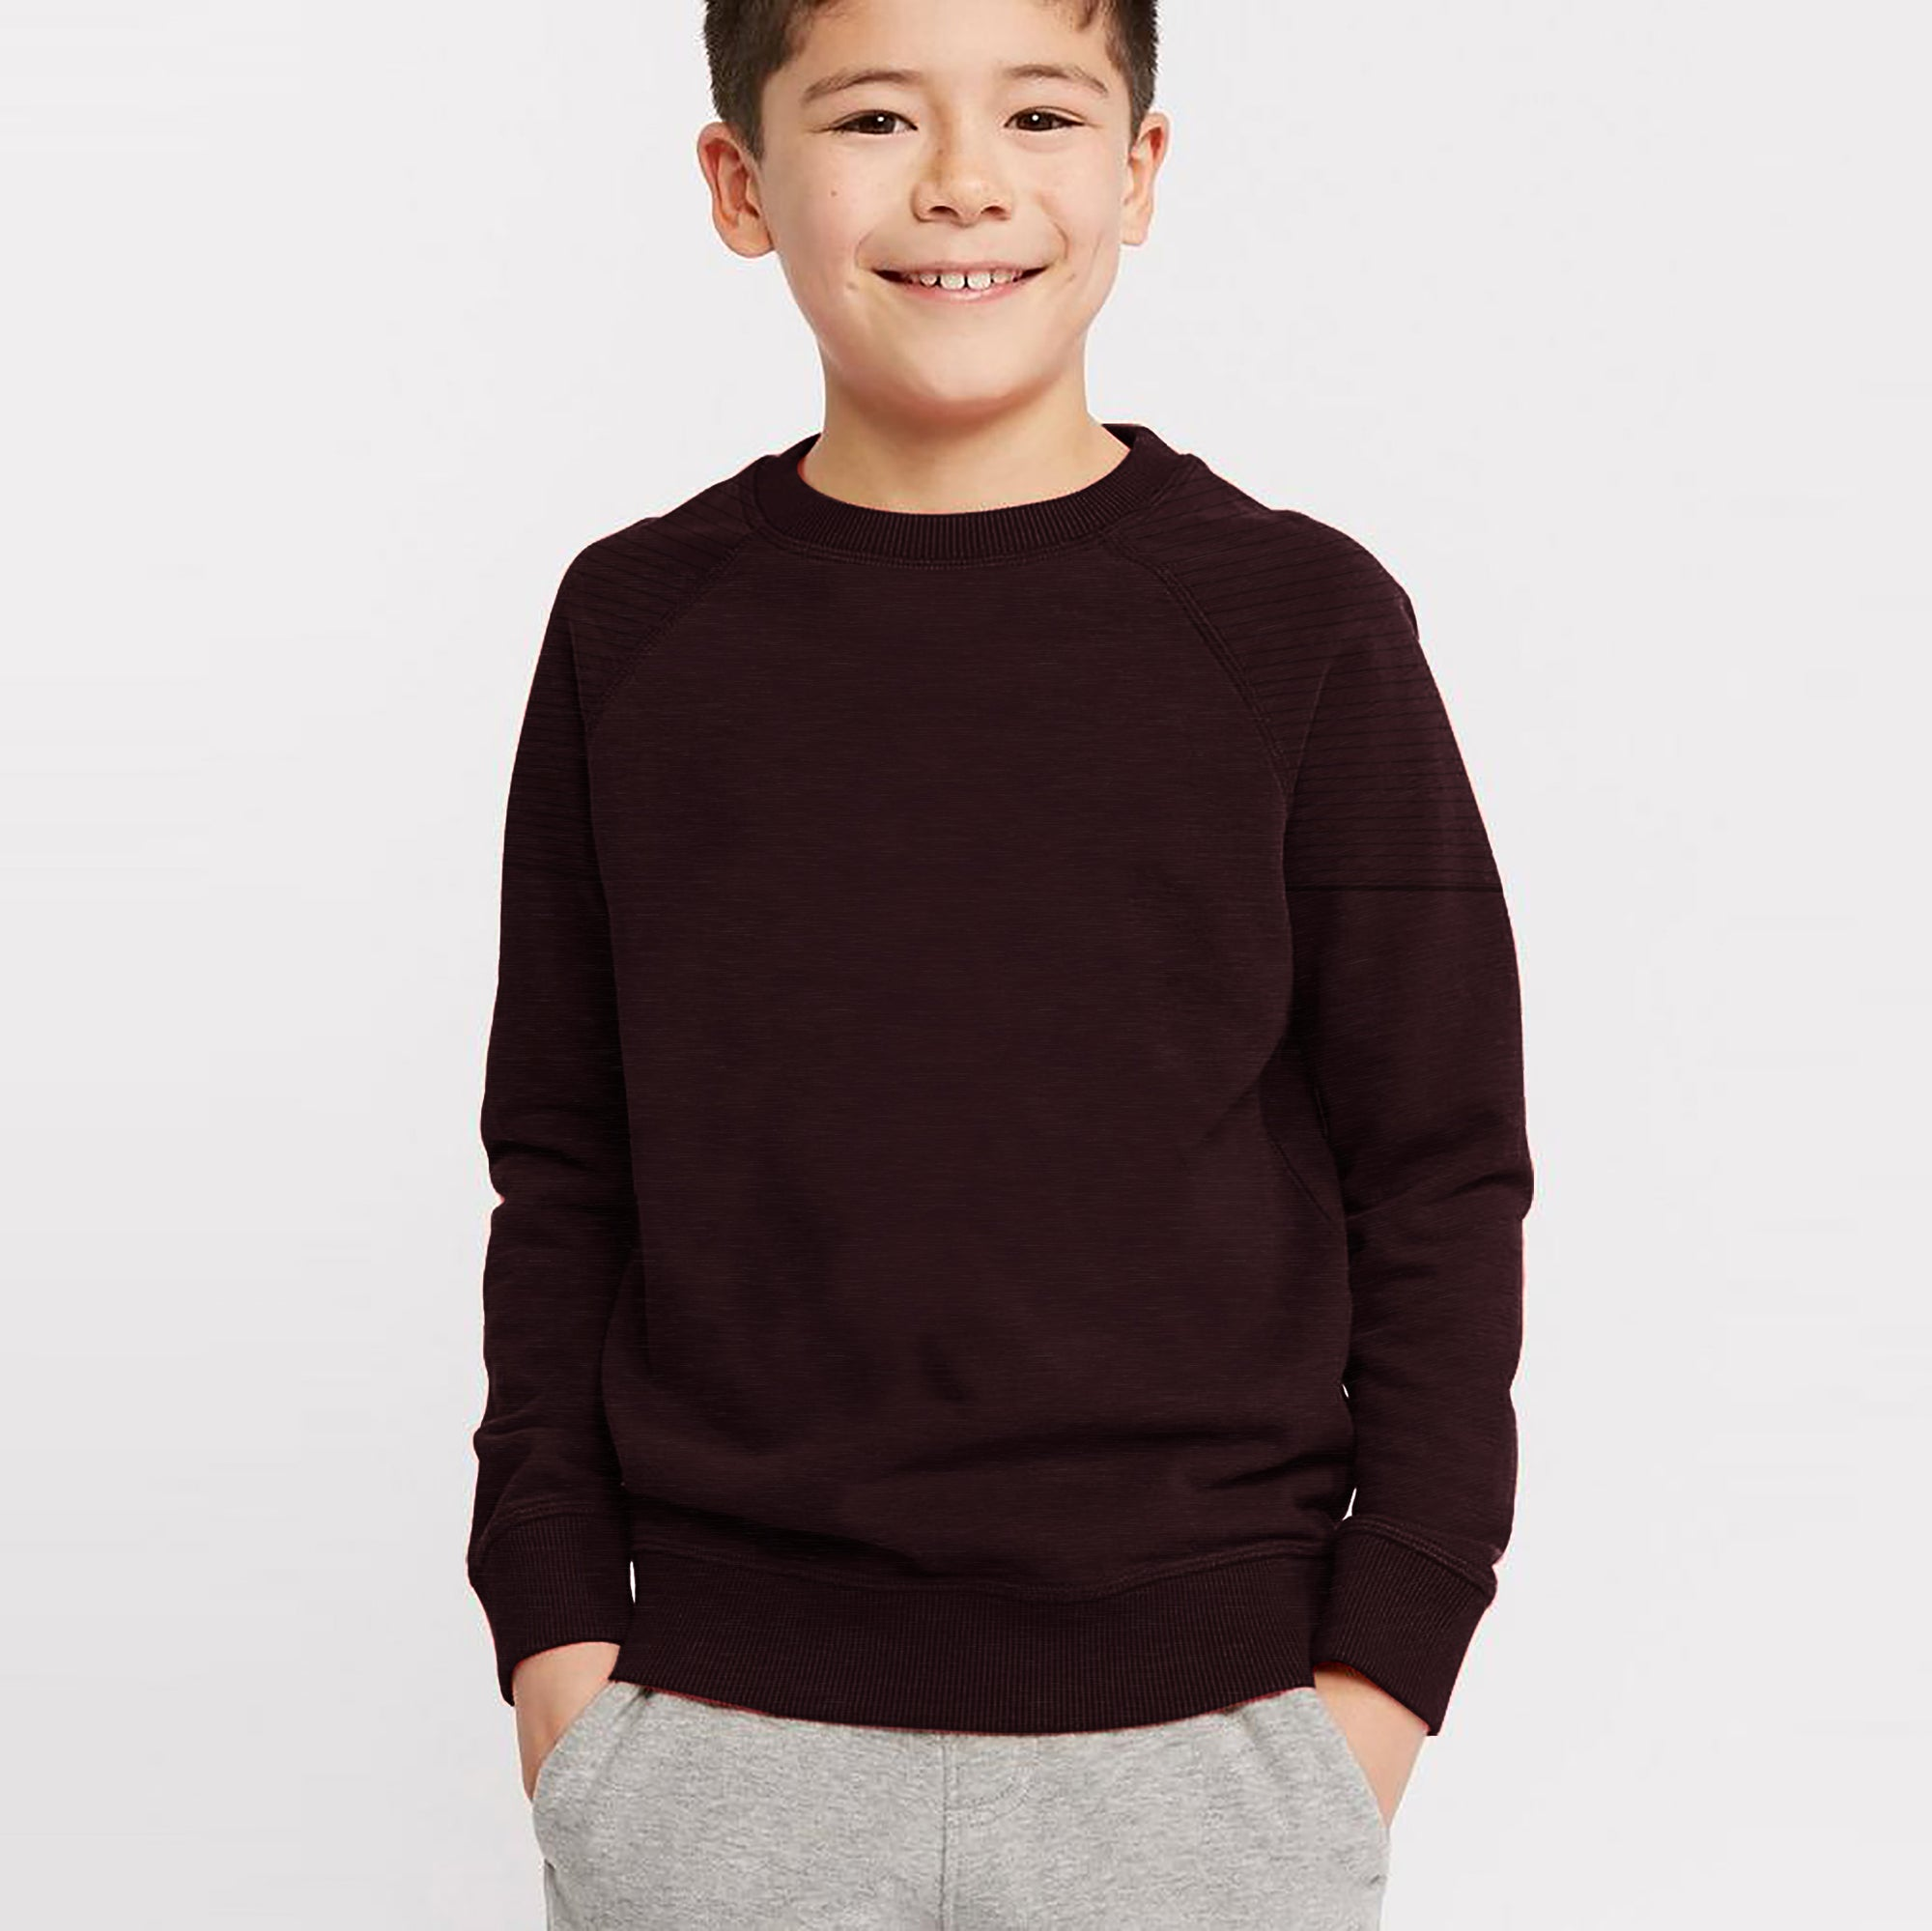 Next Terry Fleece Crew Neck Raglan Sleeve Sweatshirt For Kids-Dark Maroon Melange With Panels-SP821